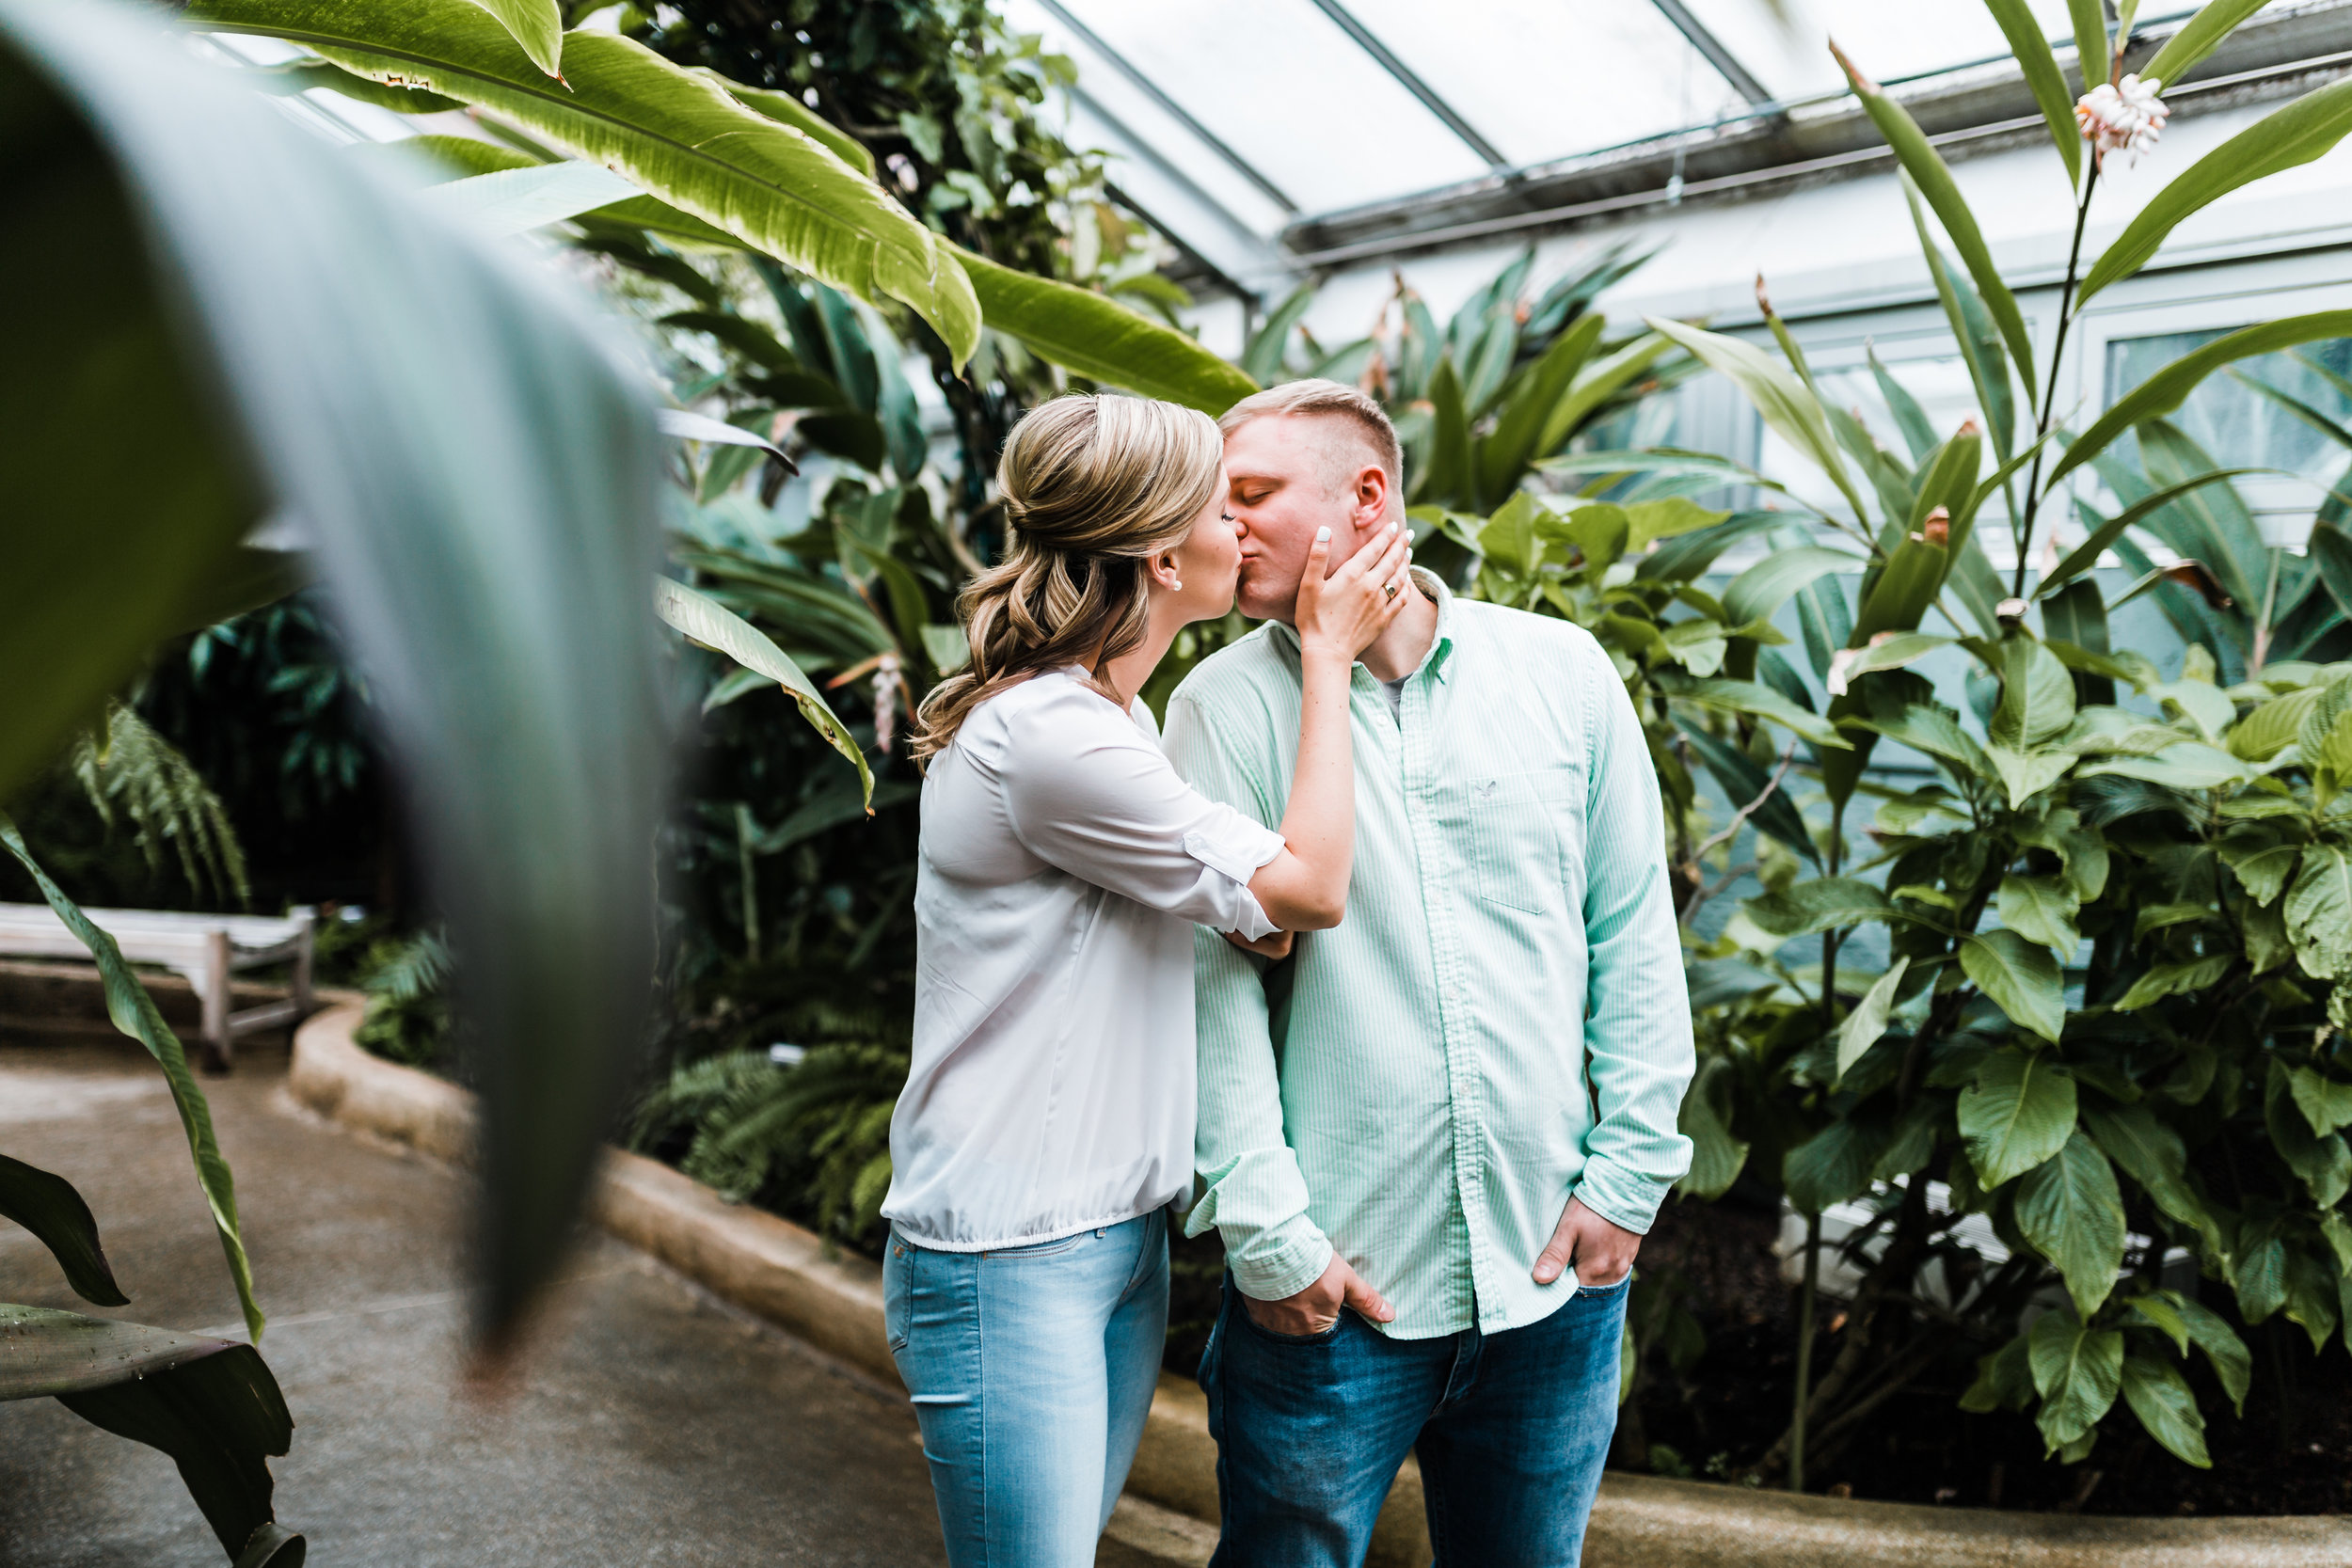 engagement session locations in Baltimore Maryland - top rated photo video business in MD